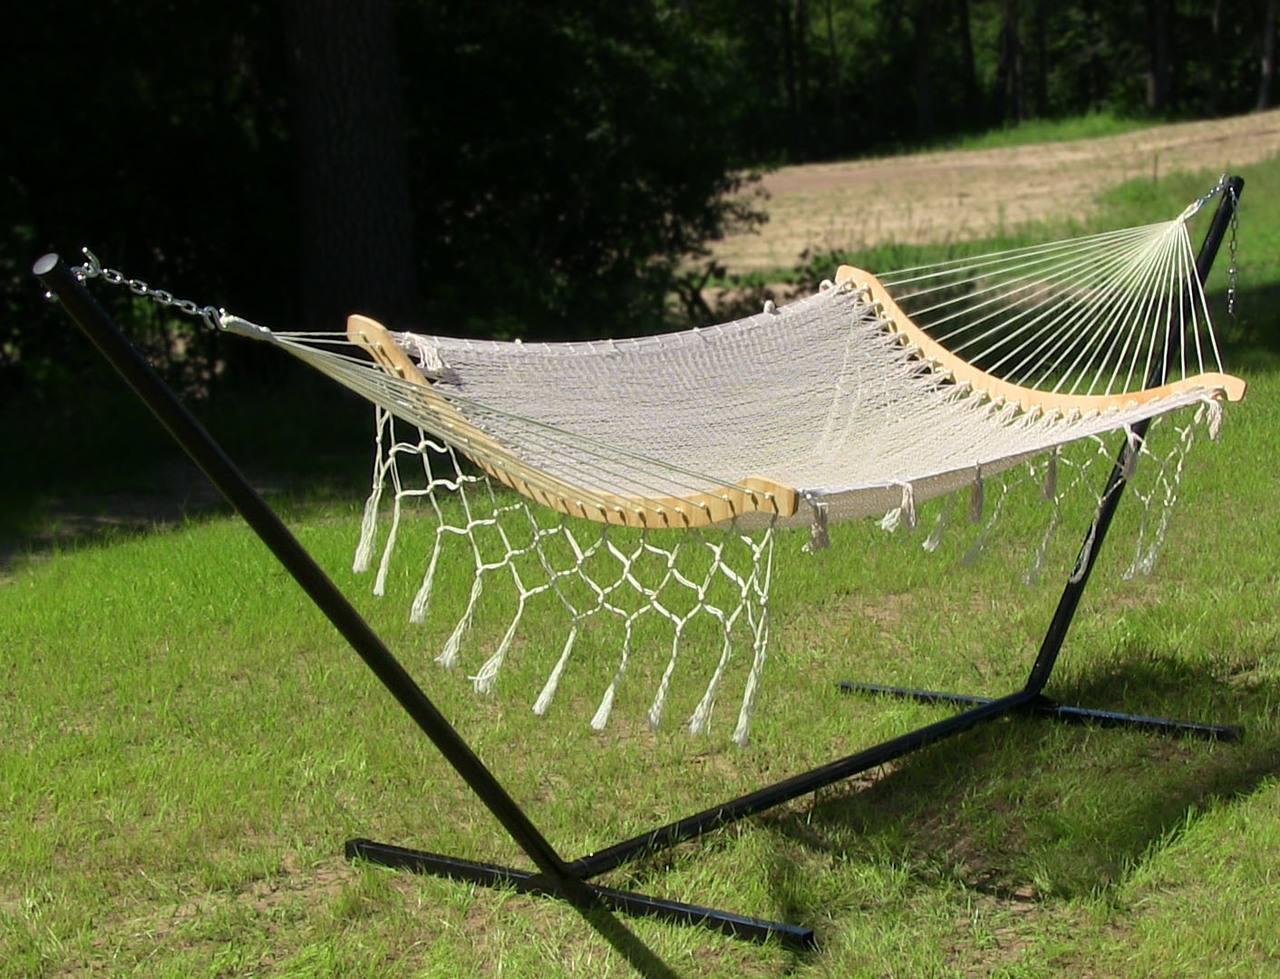 Sunnydaze Thick Cord Woven Single Person Mayan Hammock Picture 577